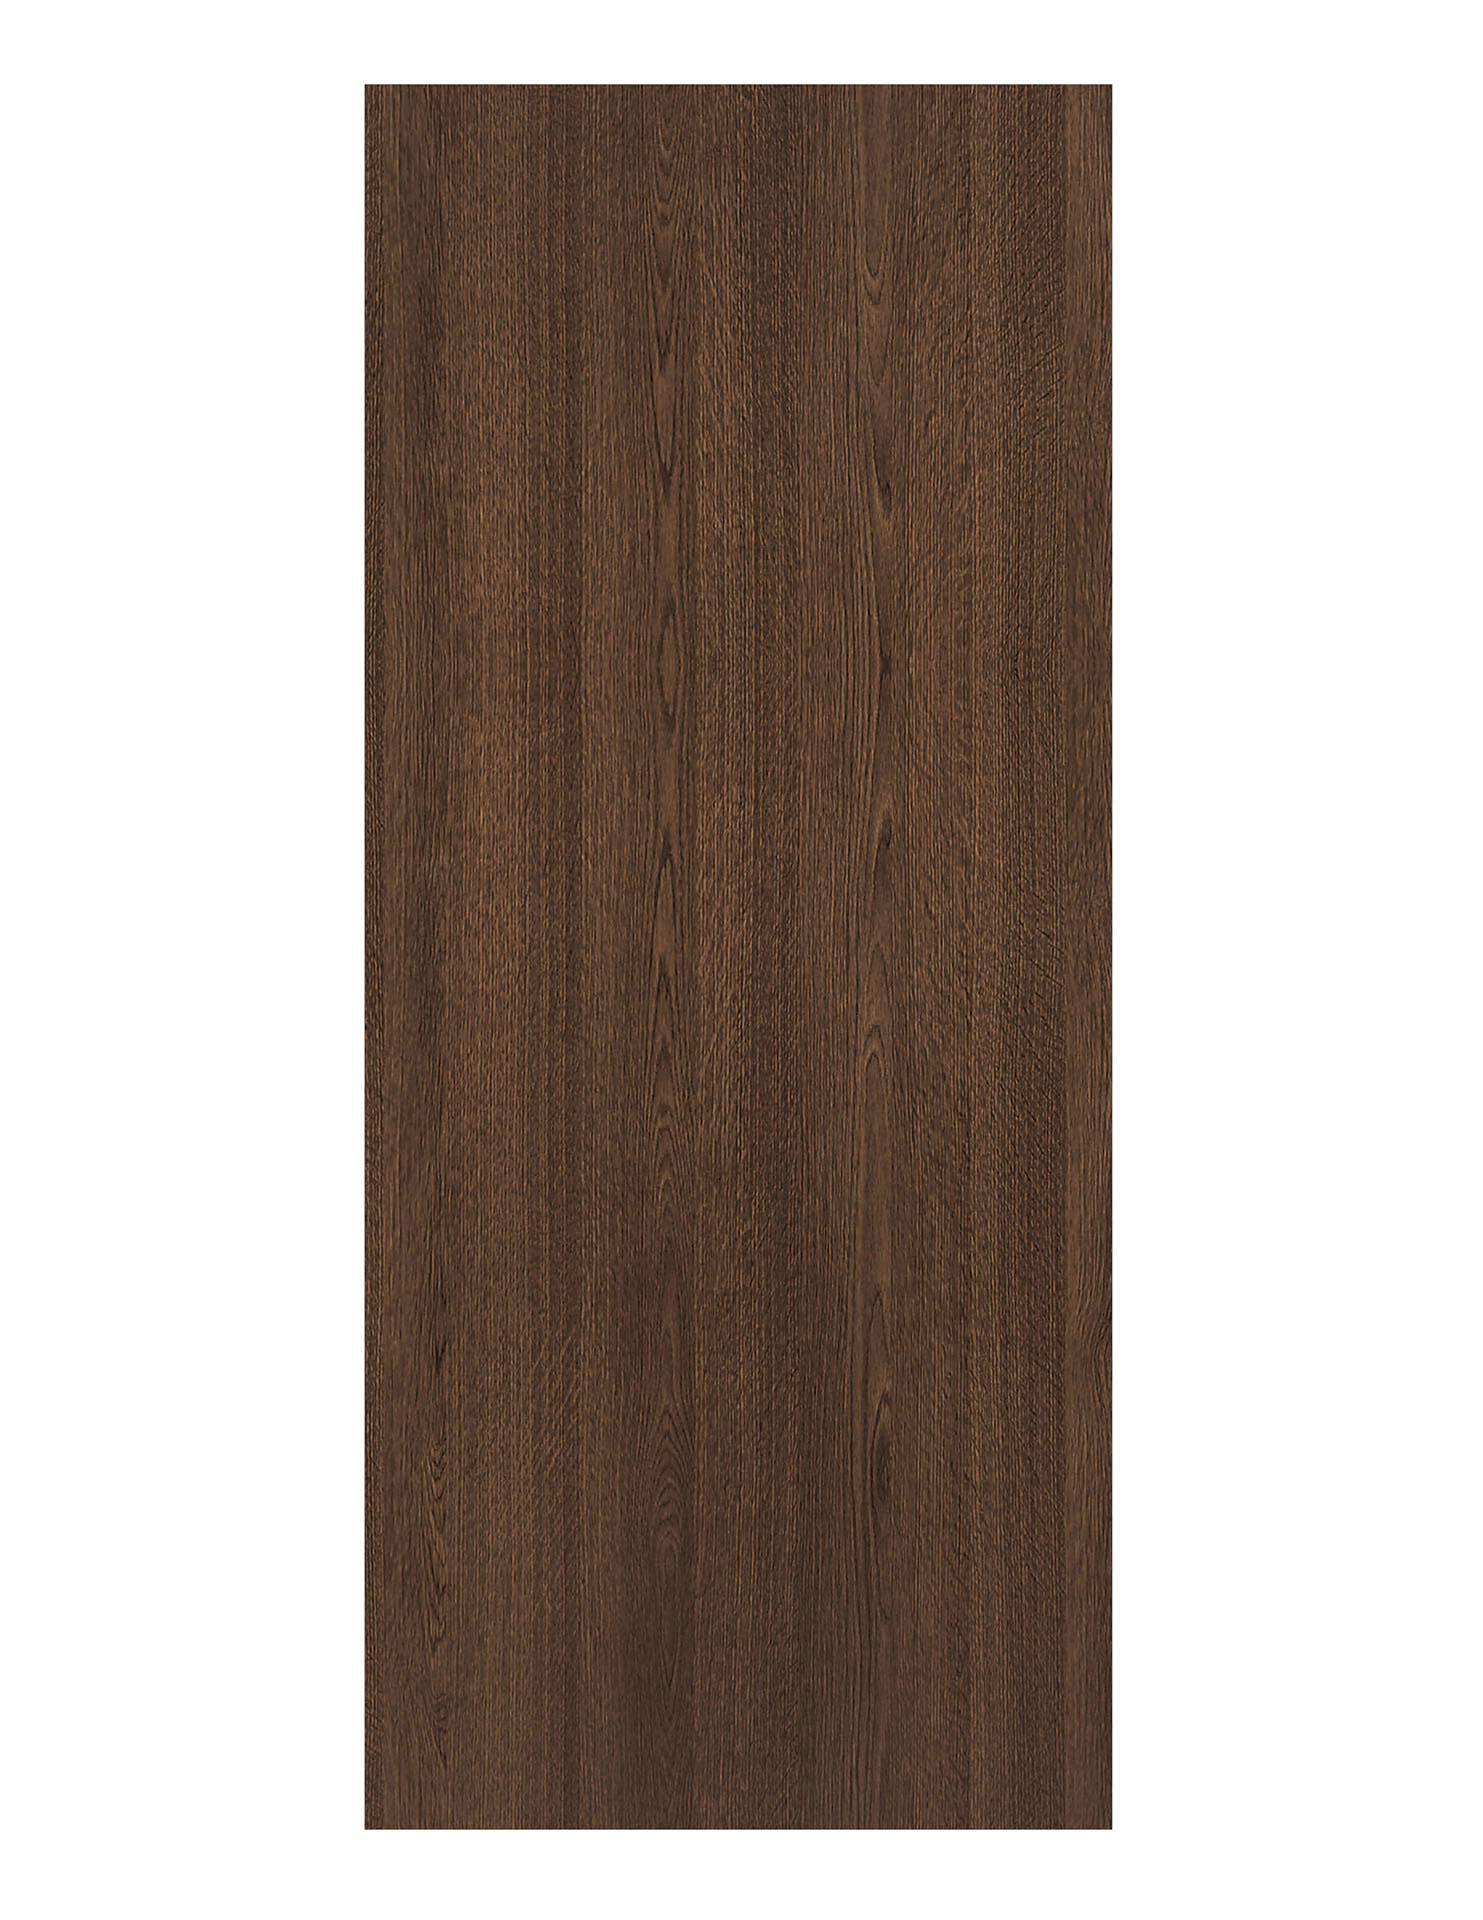 Masonite Architectural Veneer Door